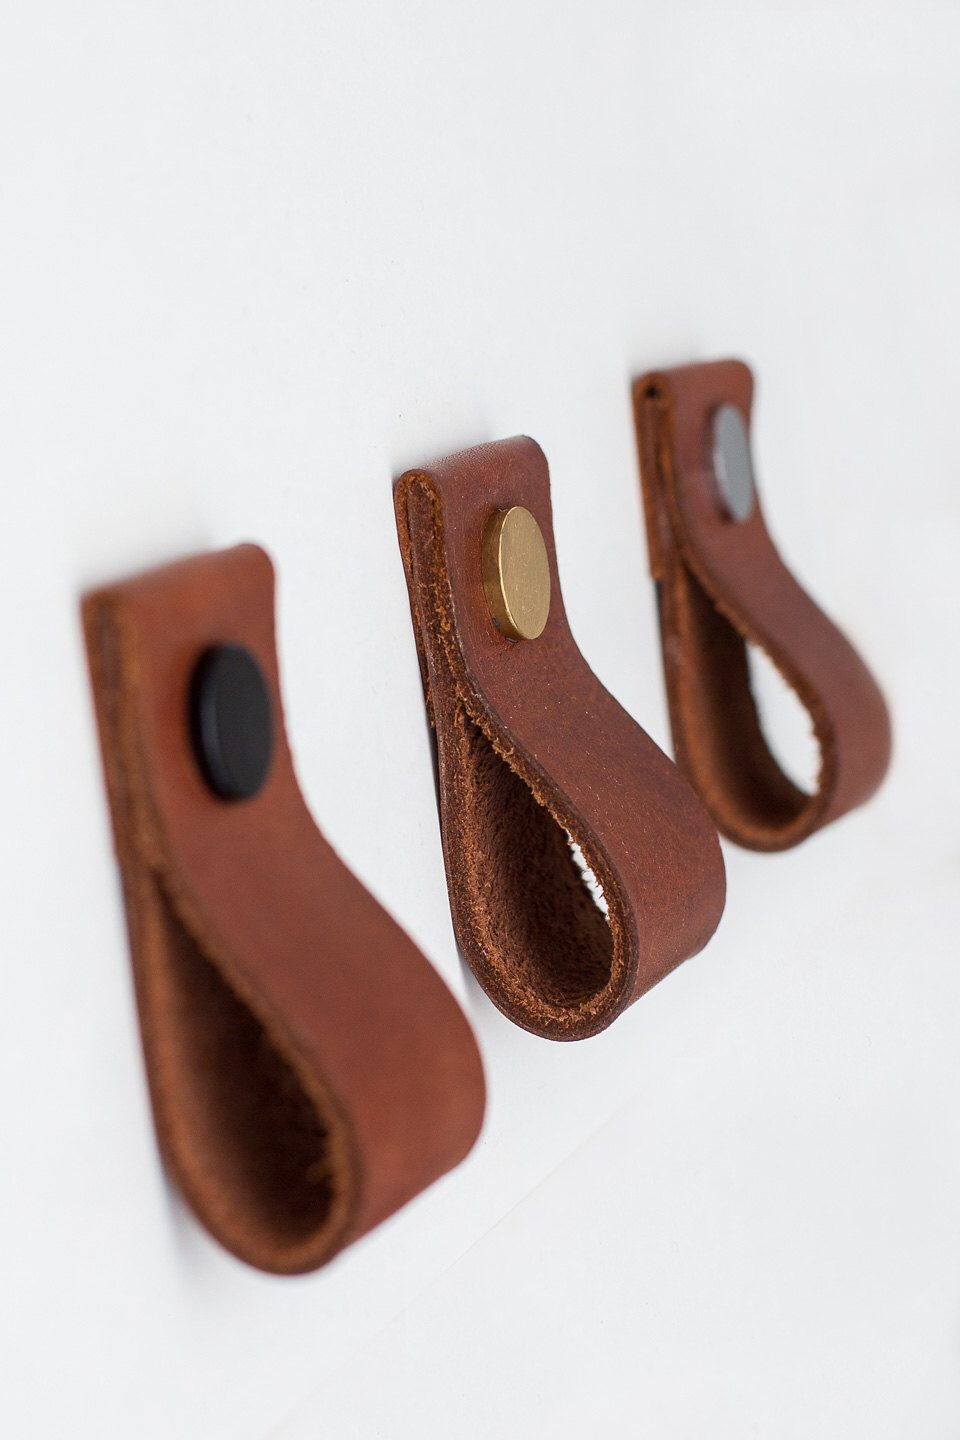 Leather Drawer Pulls Leather Pulls Dresser Handles With